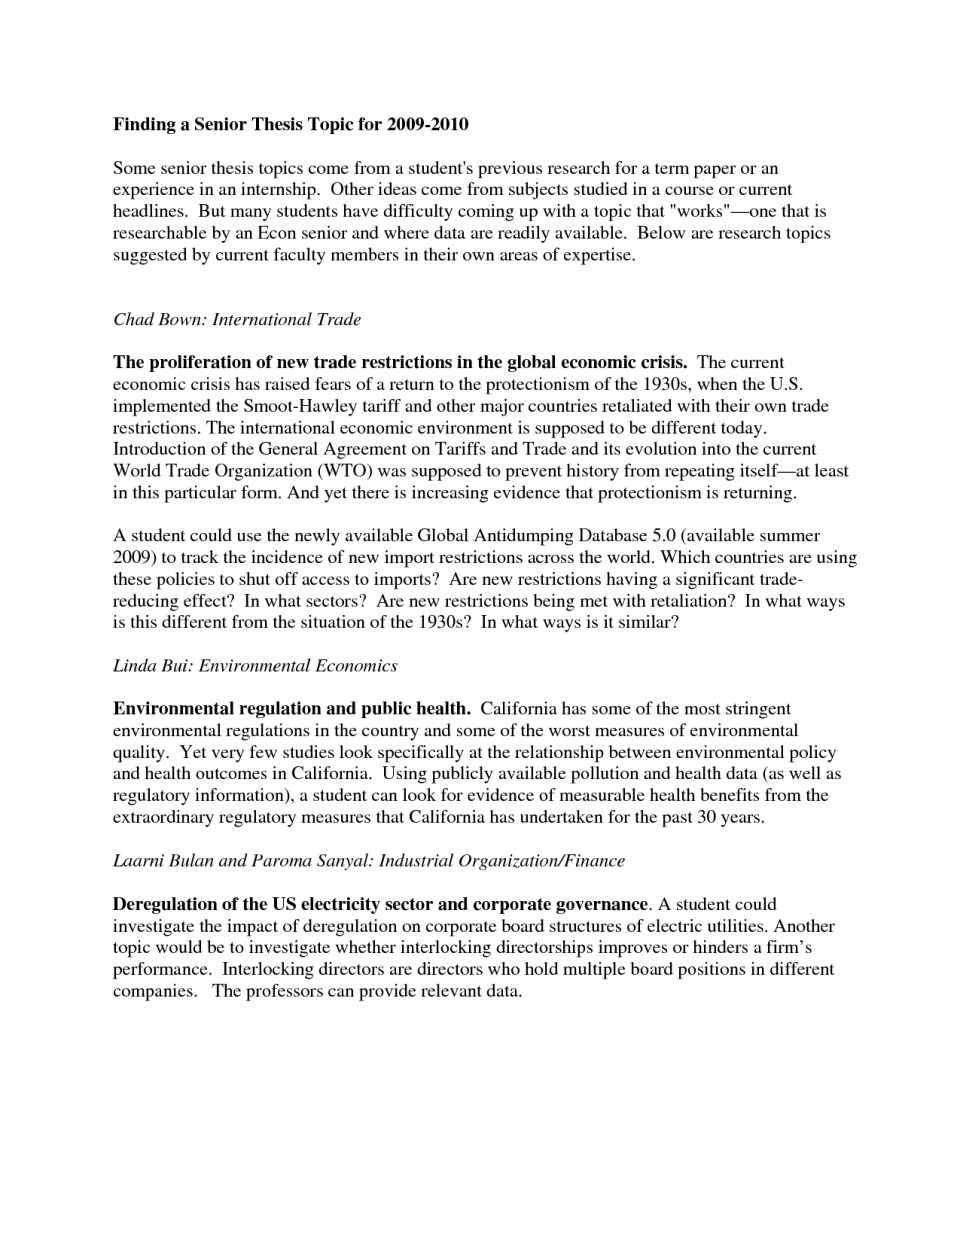 007 Interesting Topics For Research Paper High School Frightening A Students Argumentative 960